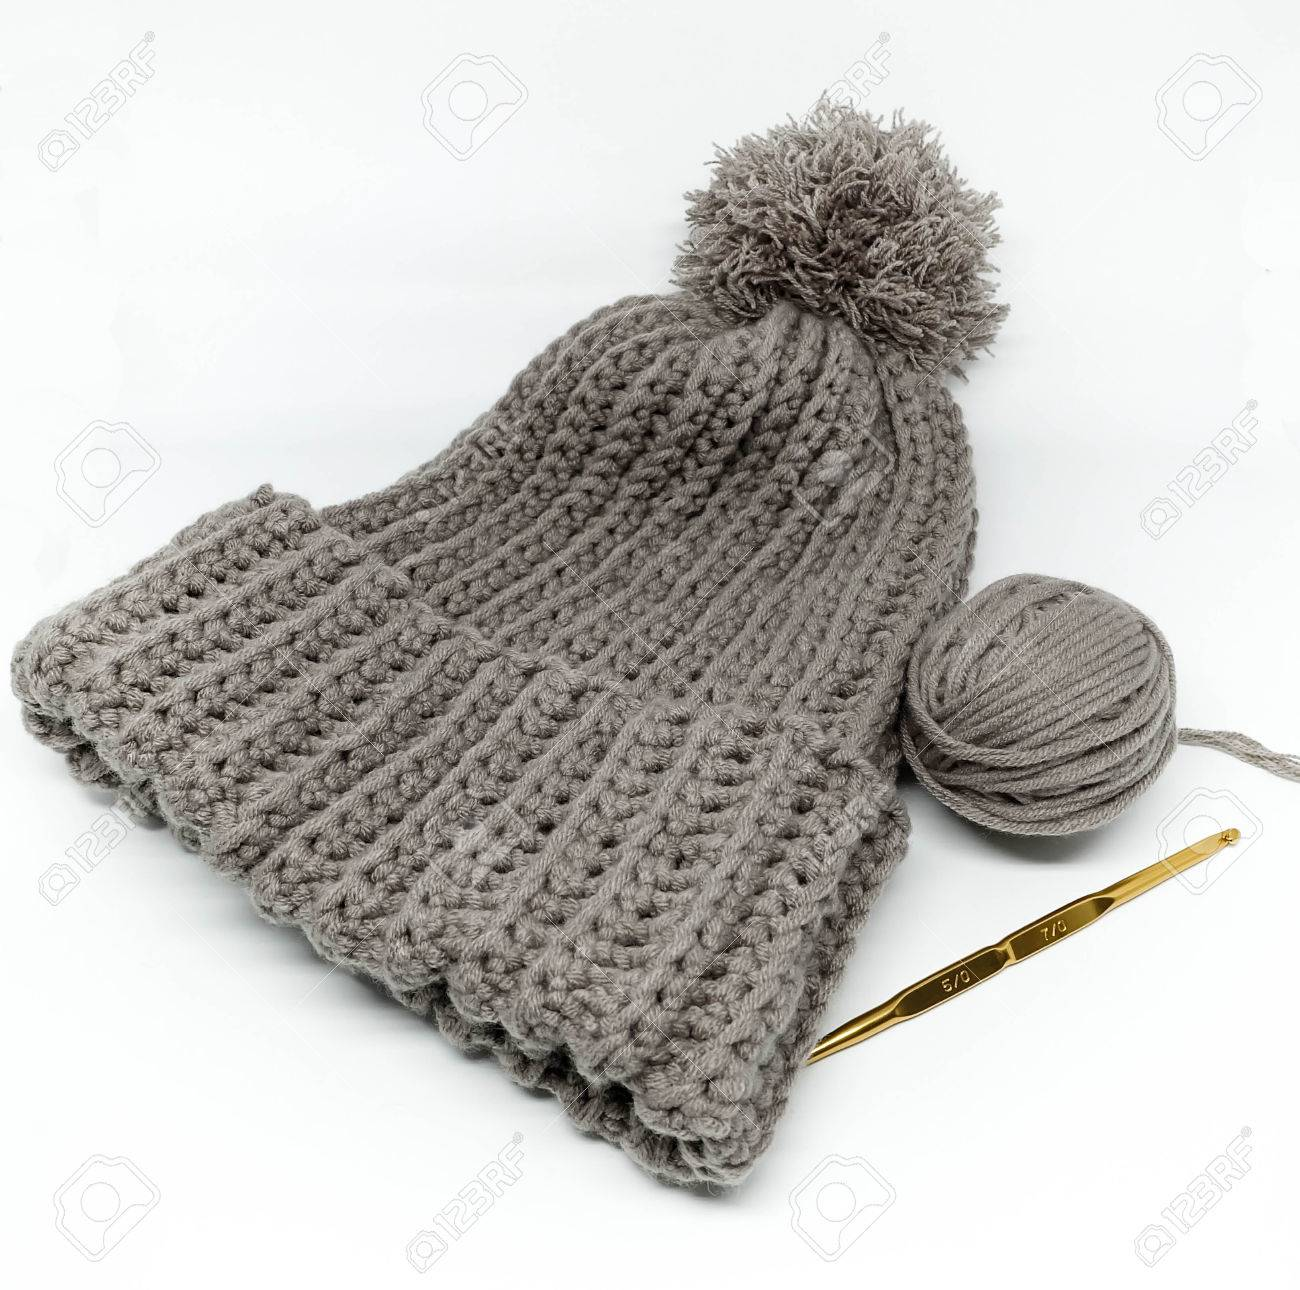 6e55d658 Gray Crochet Hat, Yarn Ball And Golden Needle Stock Photo, Picture ...